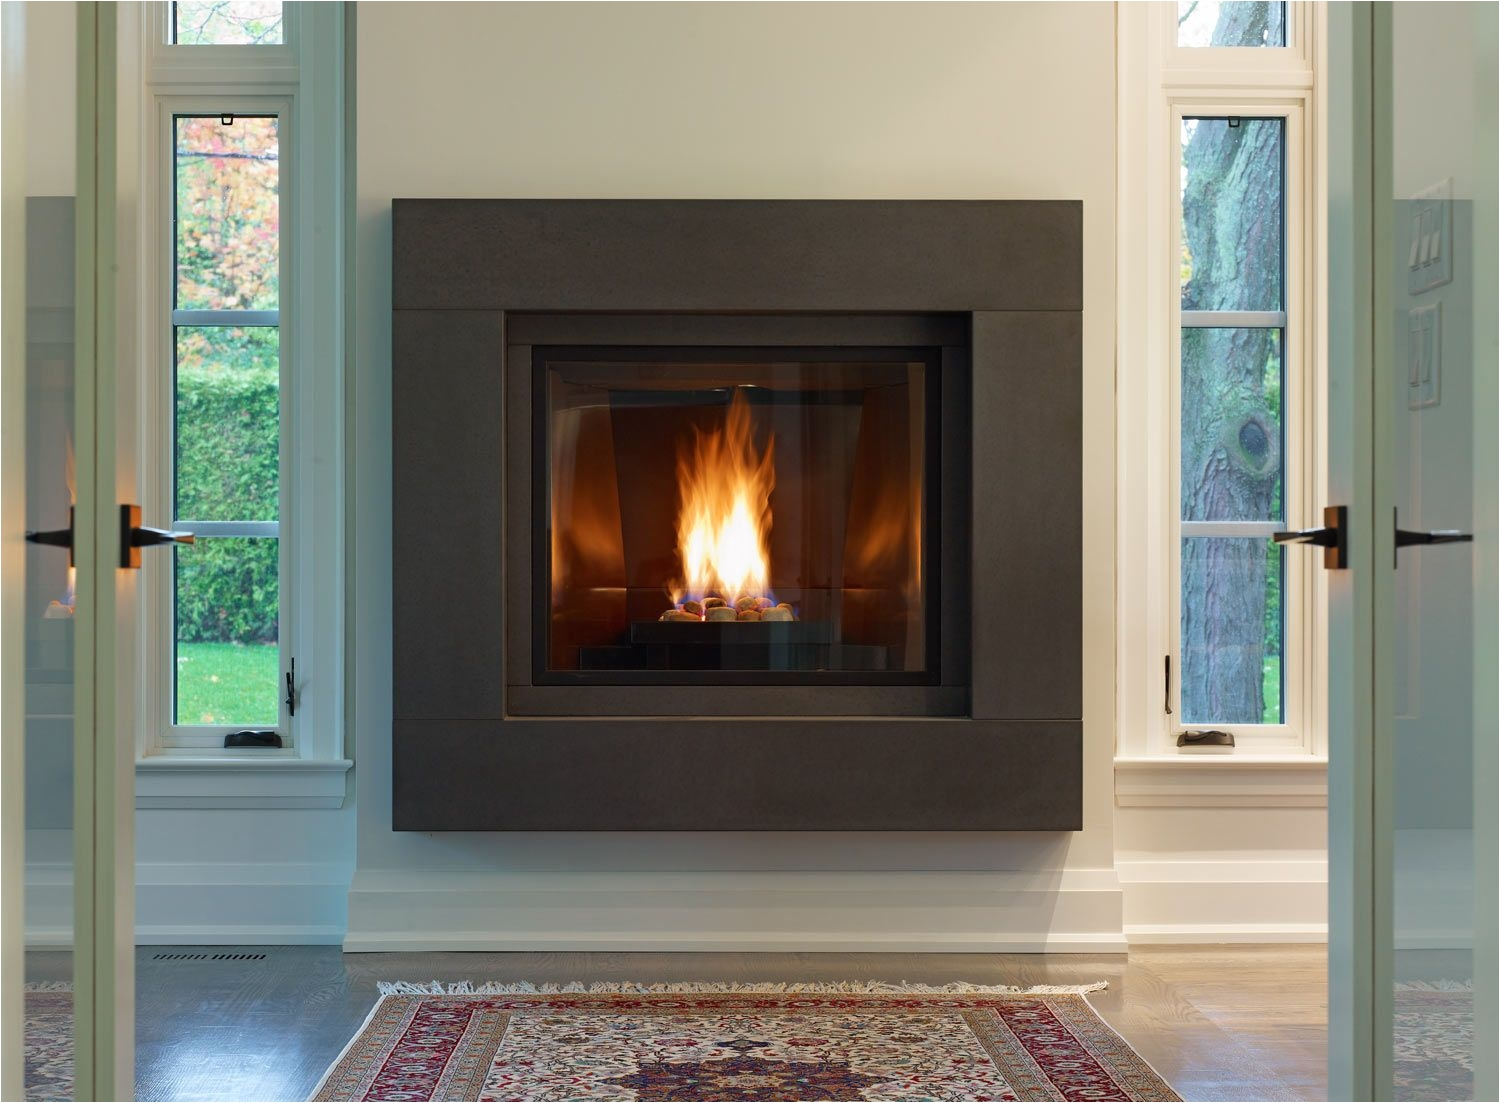 Gas Fireplace Companies Awesome Natural Gas Fireplace Mantel Modern Fire Pits and Fireplaces